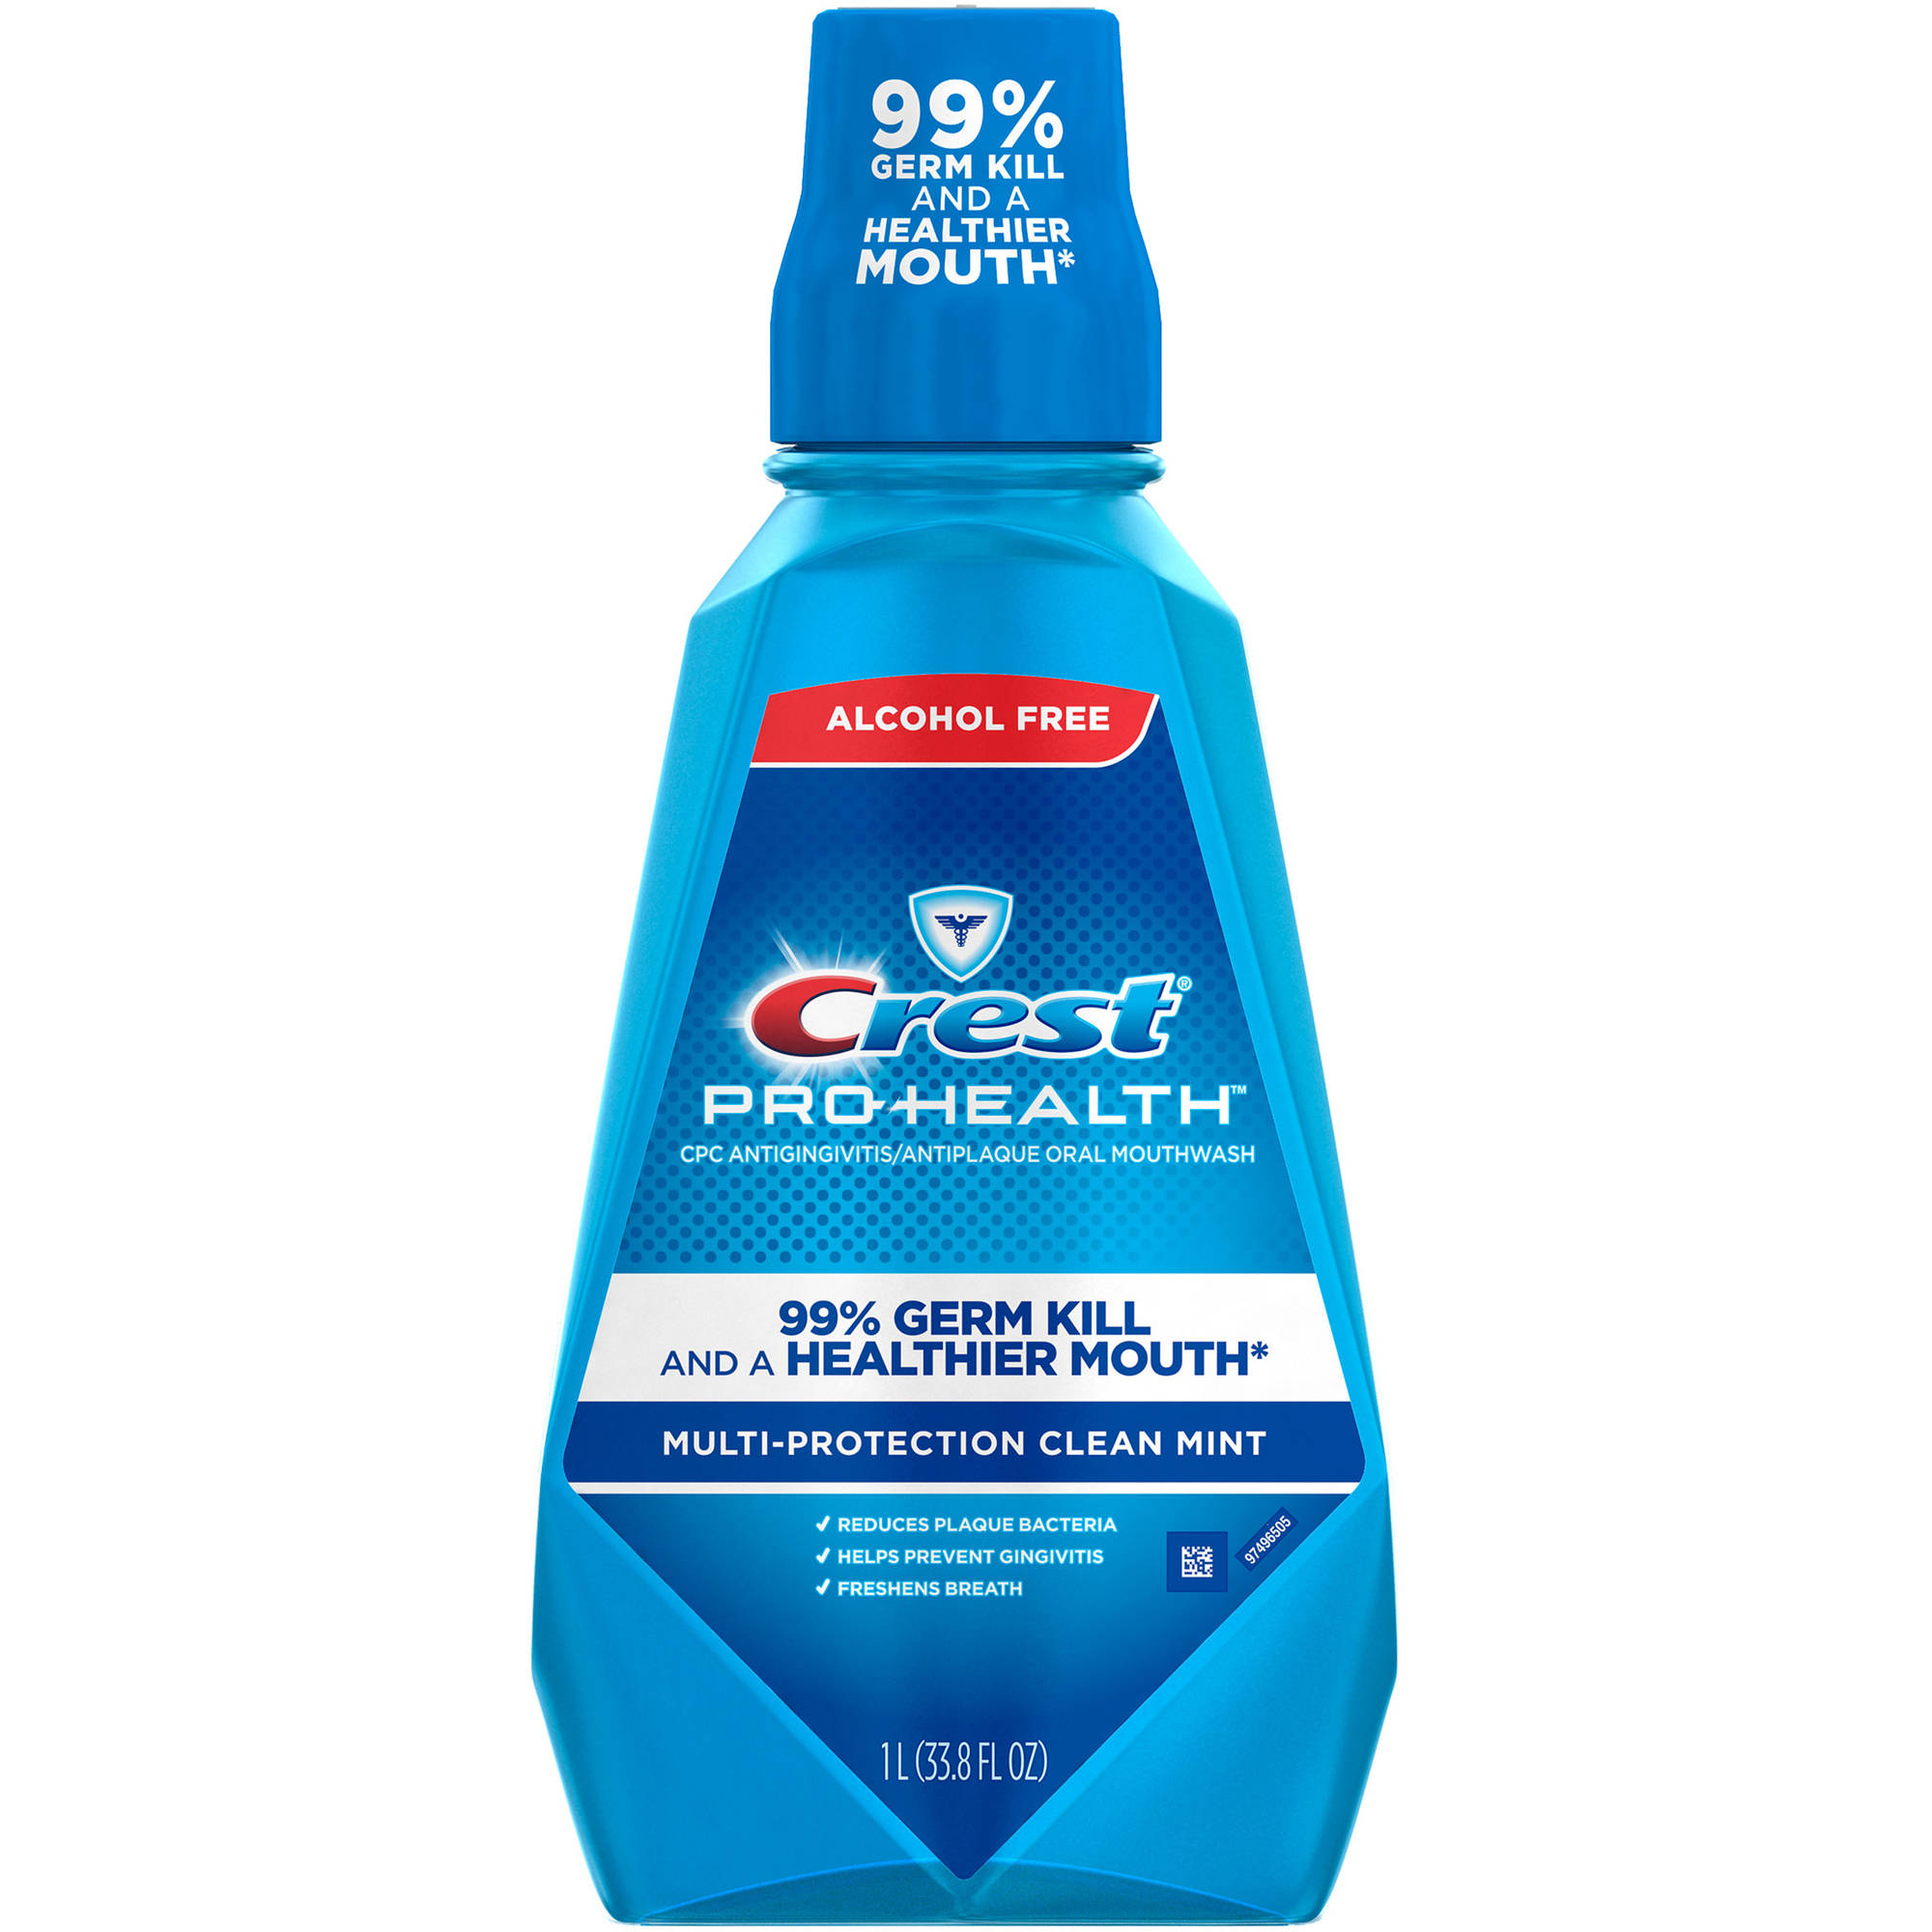 Crest Pro-Health Multi Protection Clean Mint Mouthwash, 33.8 fl oz